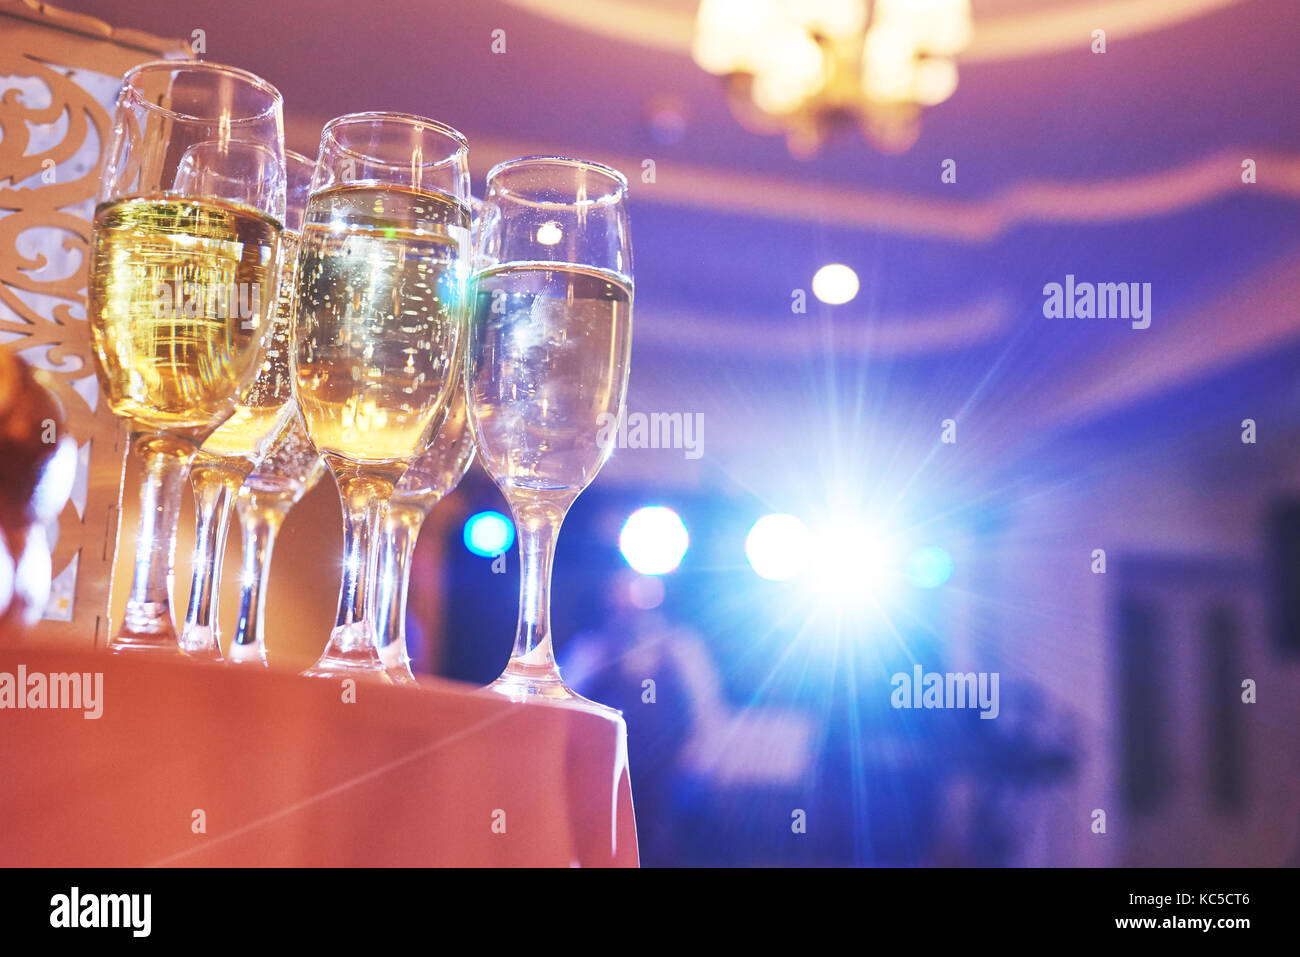 A lot of wine glasses in blue light with a cool delicious champagne or white wine at the bar - Stock Image